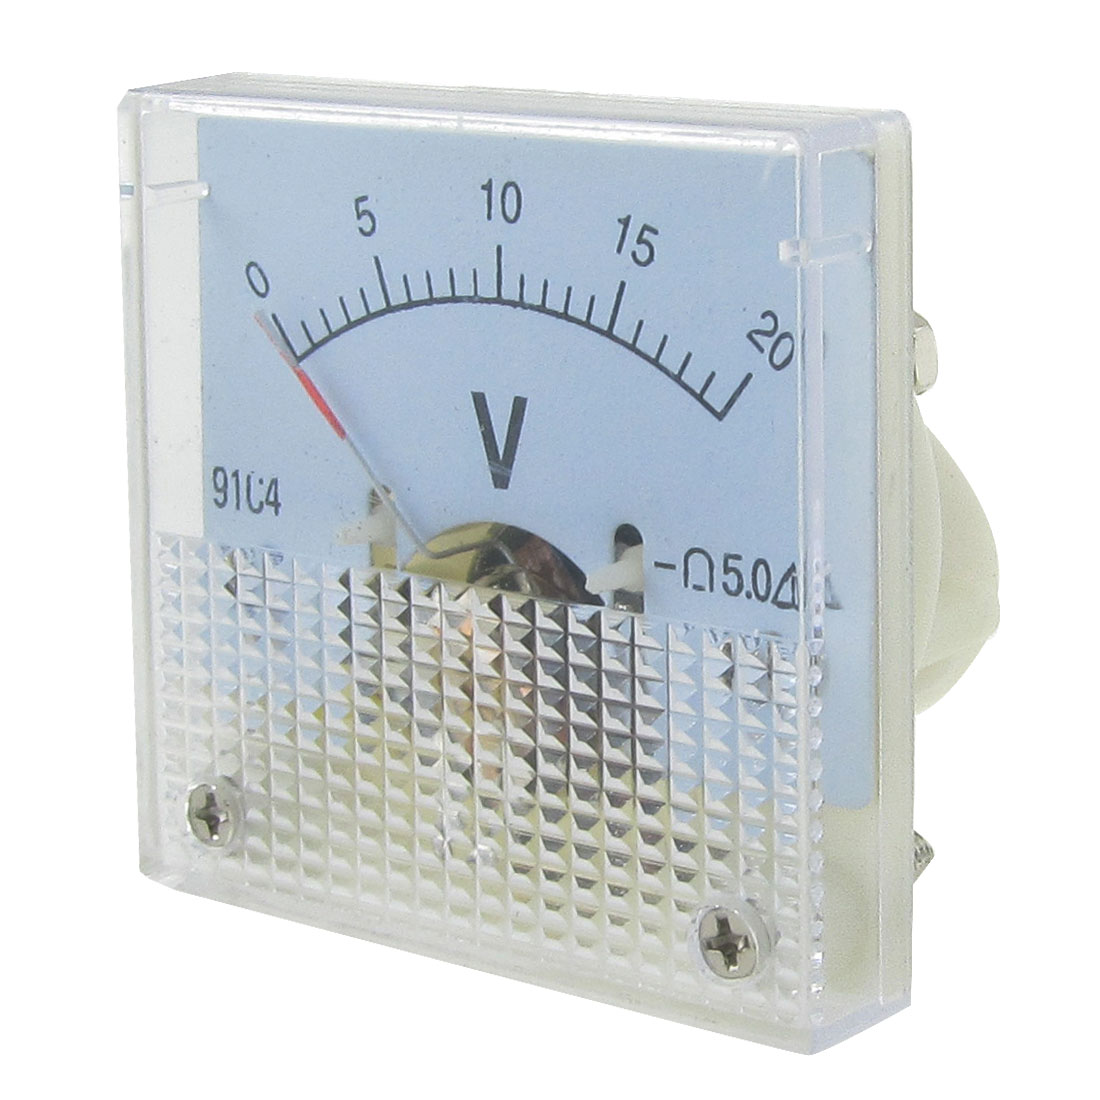 DC 0- 20V 44.5x44.5mm Panel Volt Analog Gauge Voltage Meter Class 5.0